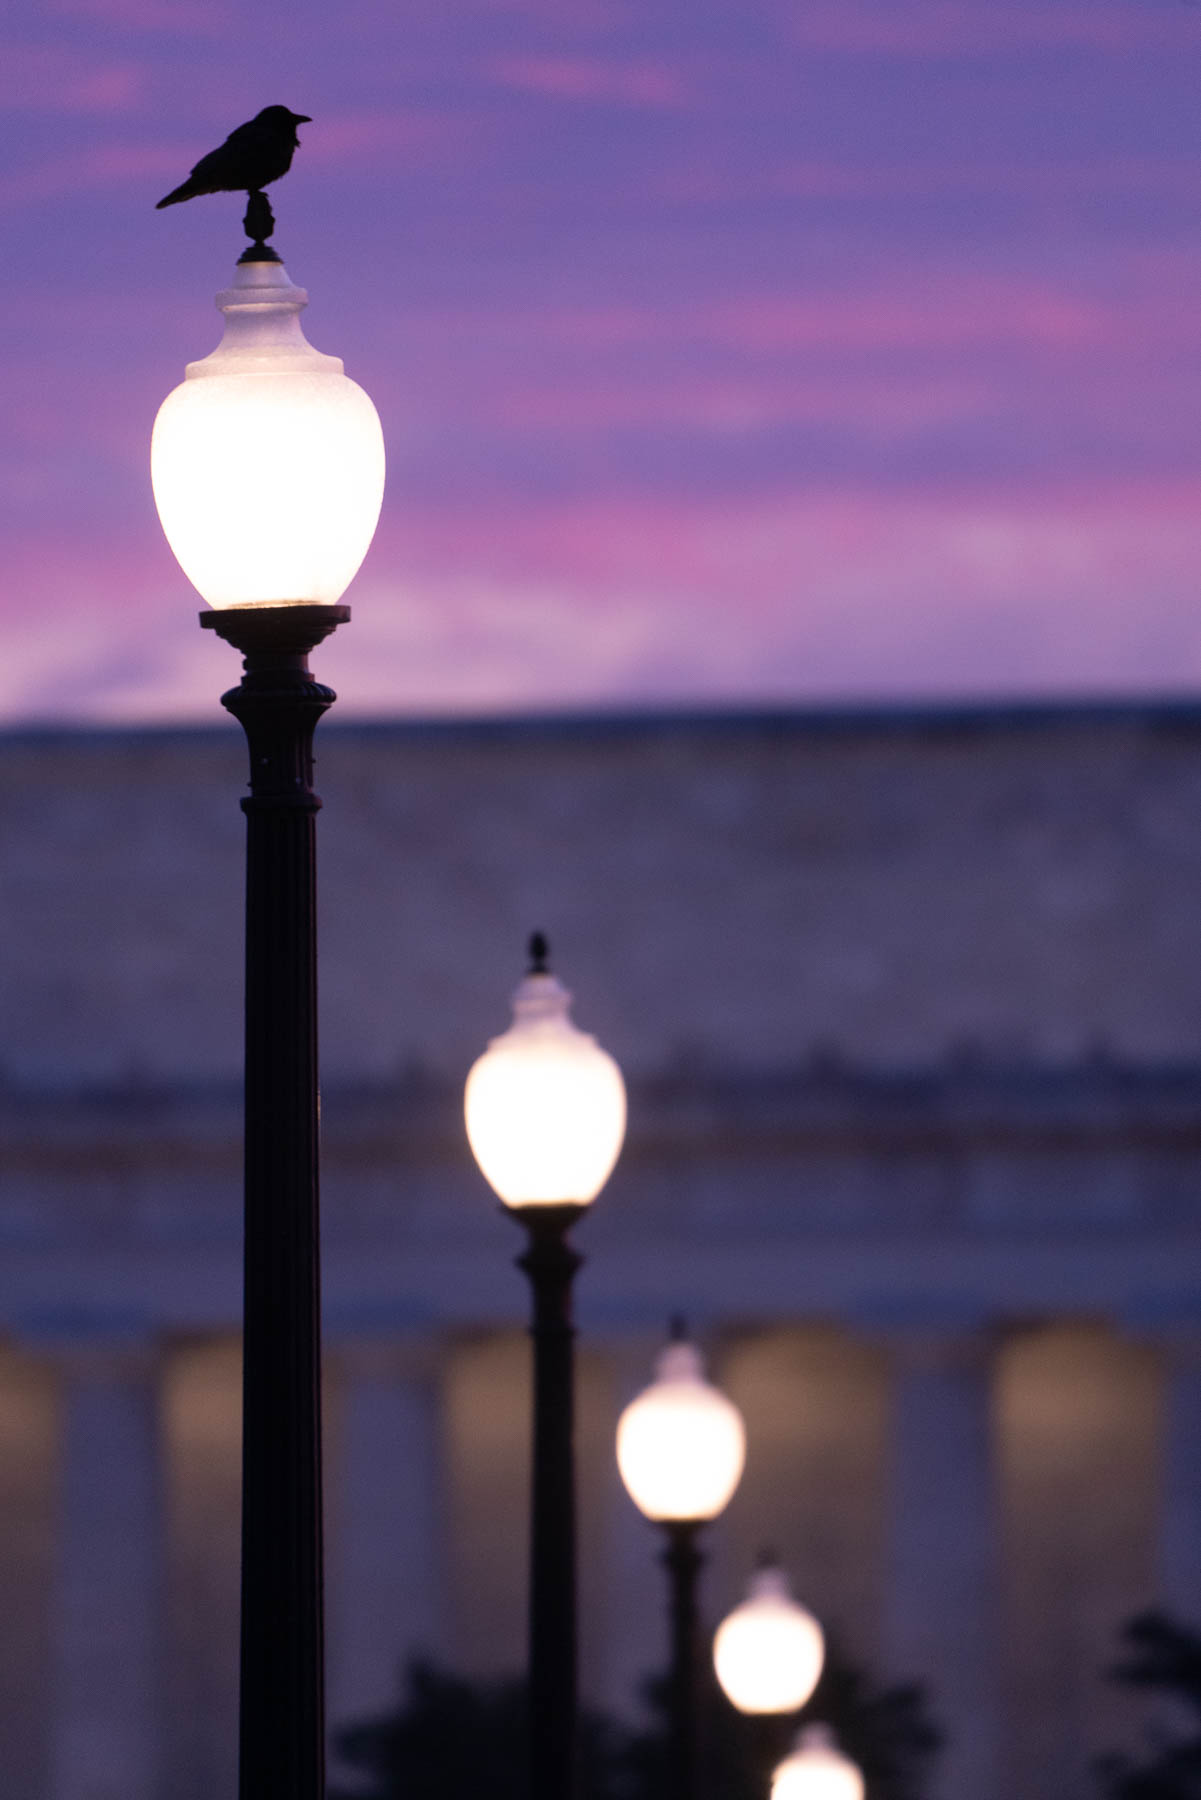 lincoln memorial, sunrise, washington dc, street lamps, compression, lines, street photography, bird